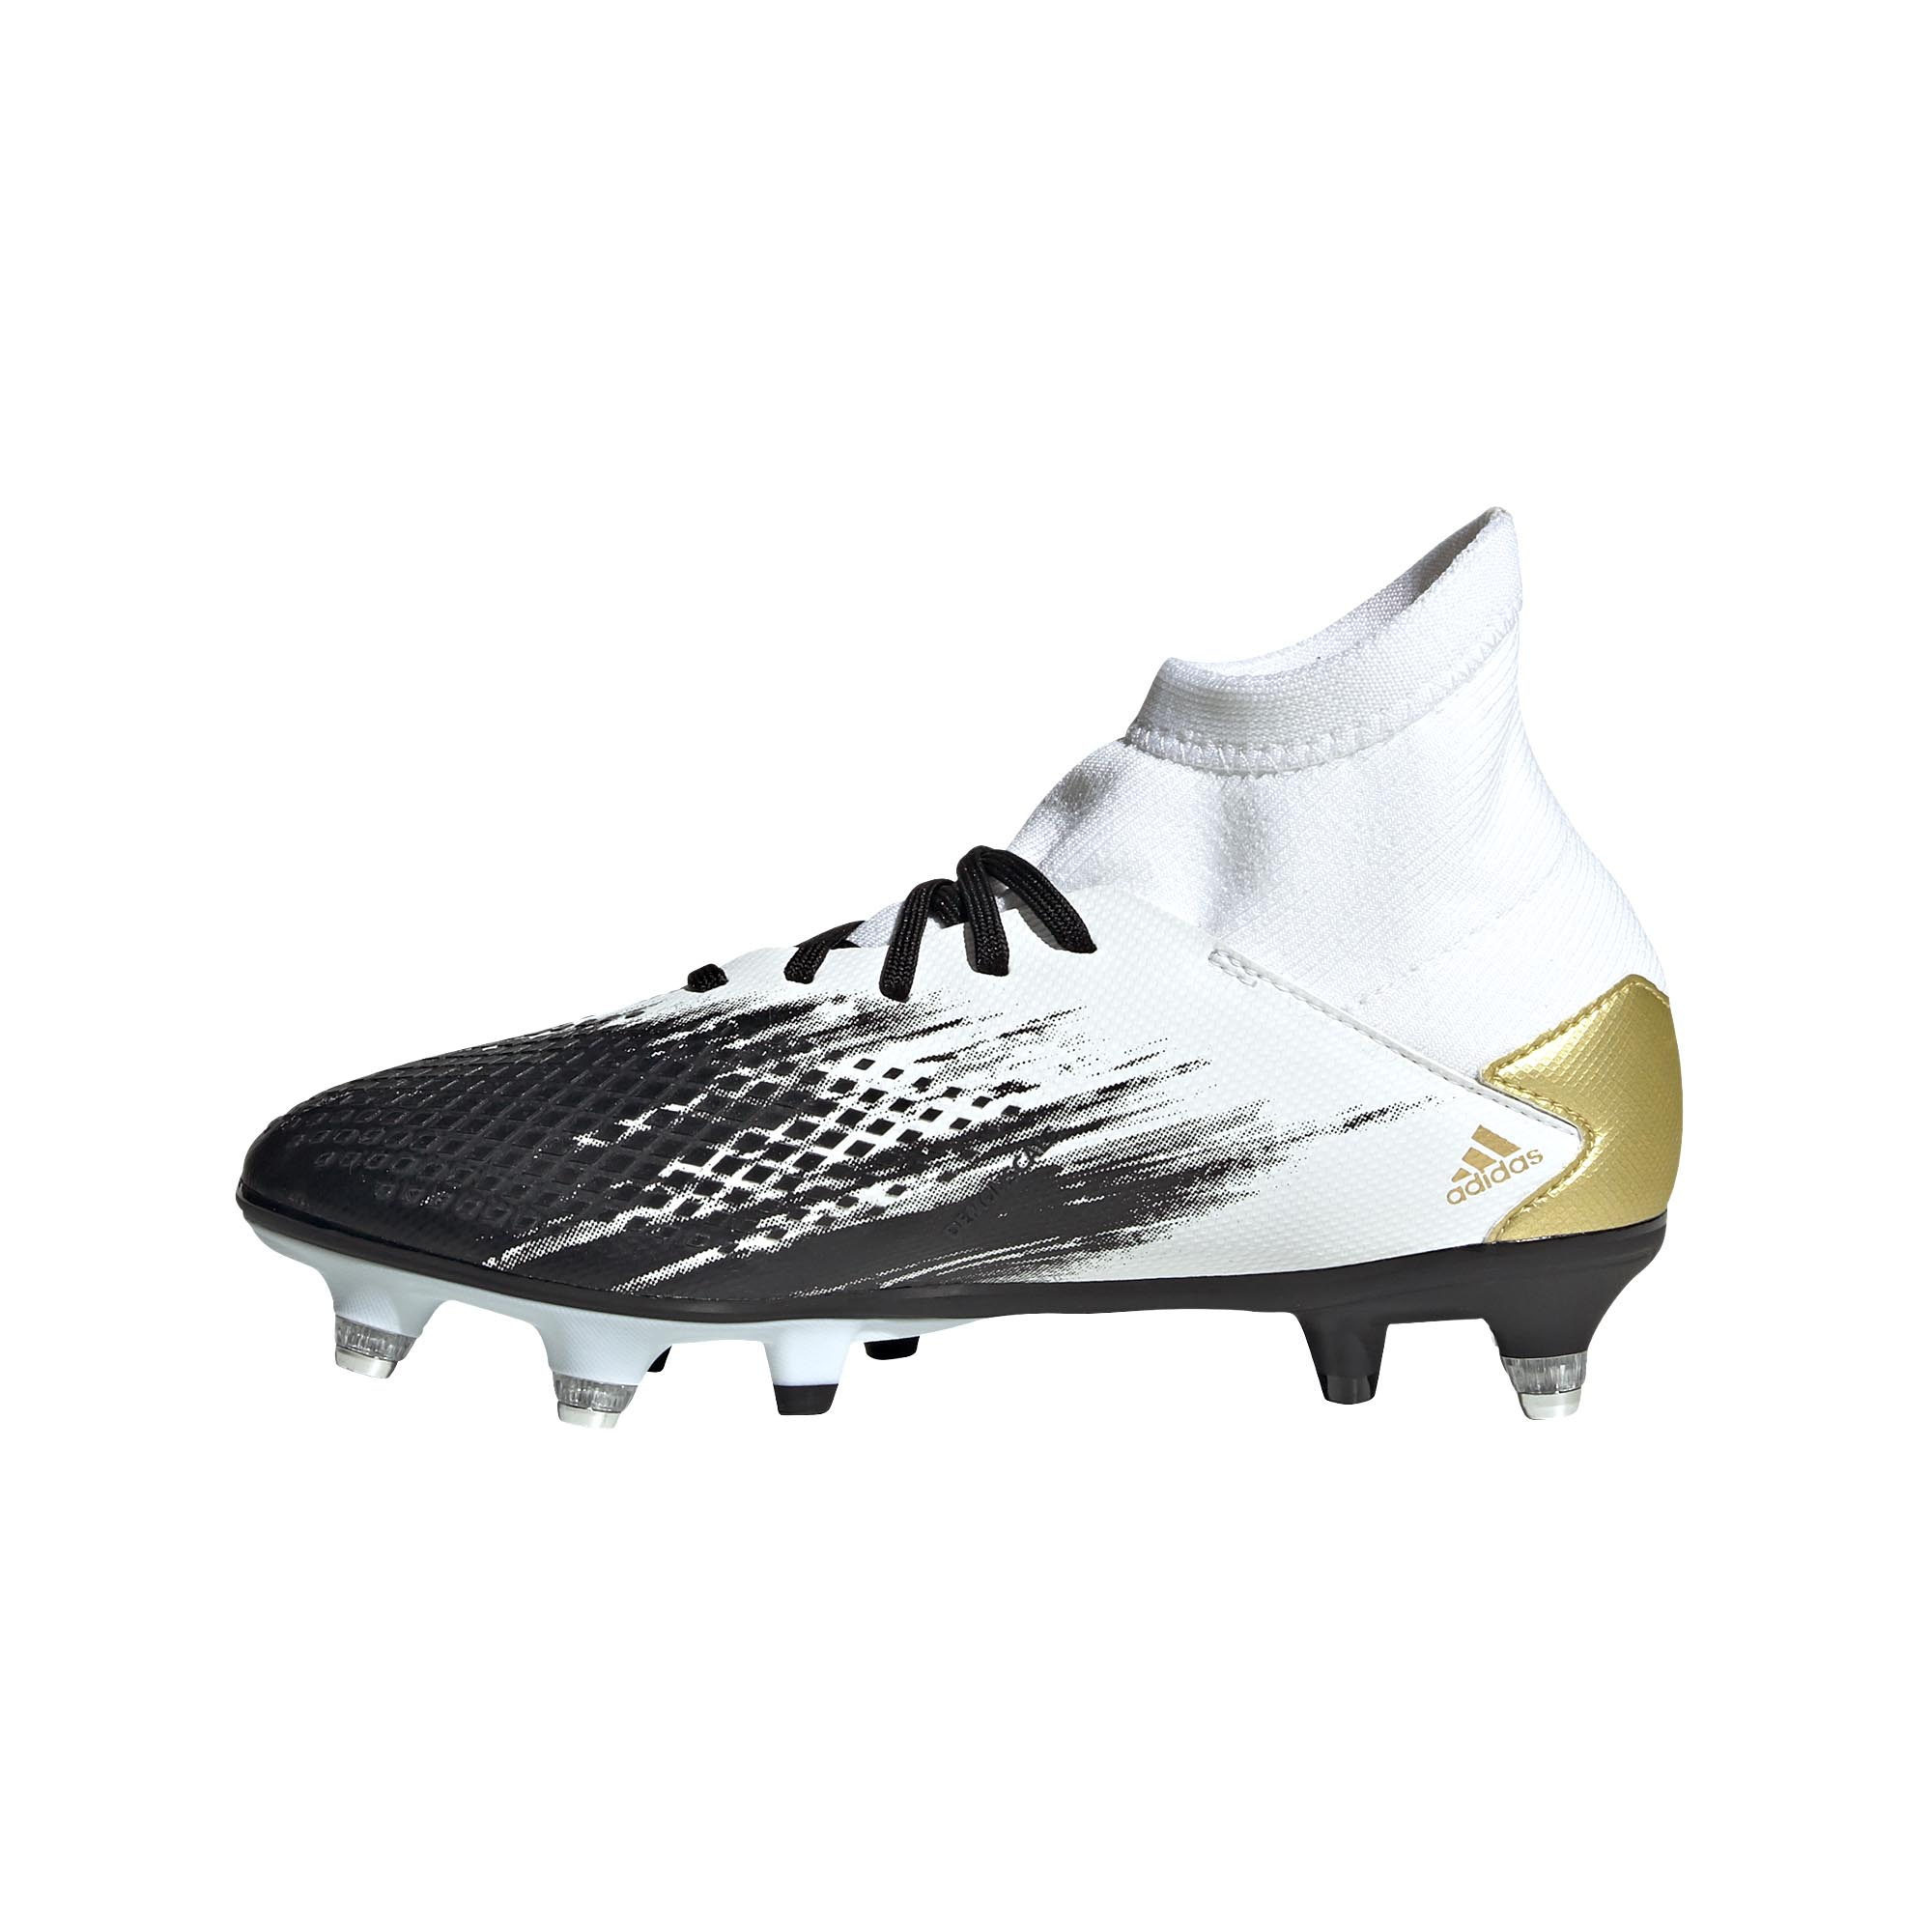 Adidas-Predator-20-3-SG-Soft-Ground-Junior-Enfants-Football-Boot-Inflight-Blanc miniature 8